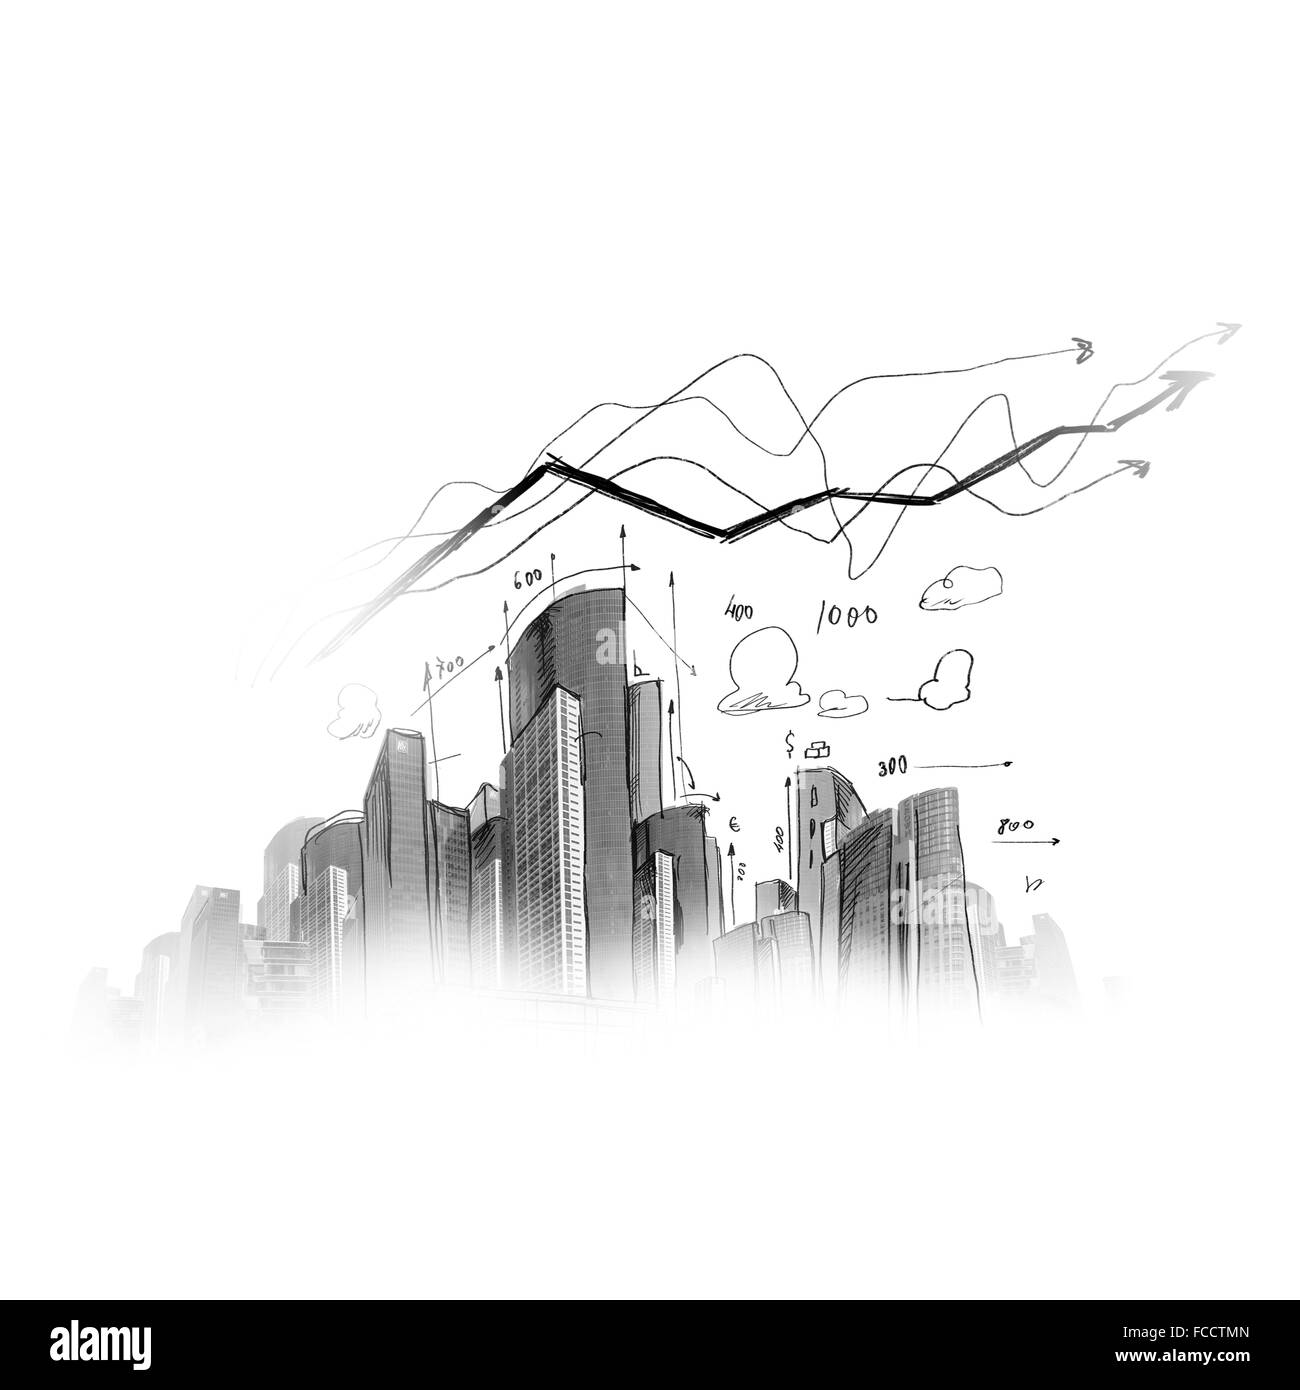 Background image with model sketch of modern city Stock Photo